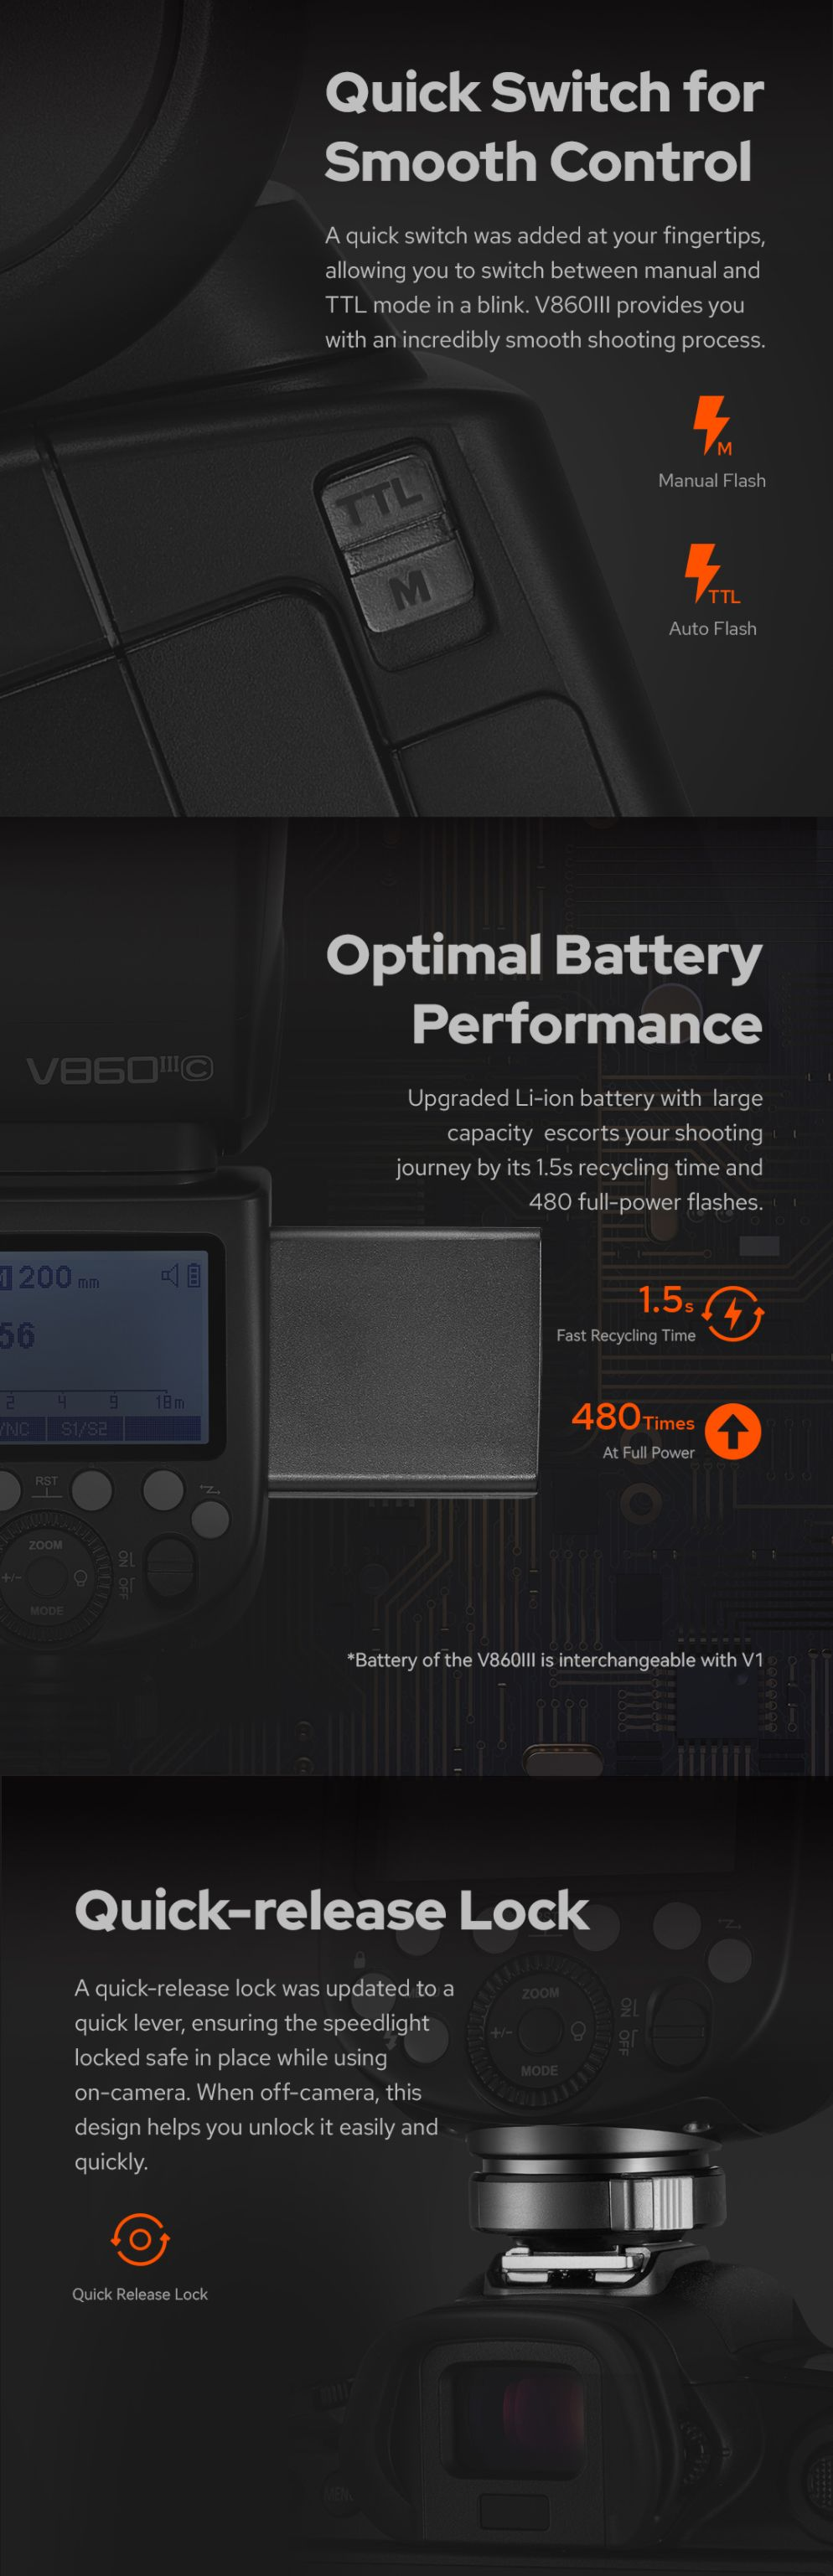 V860 III Quich Switch Smooth Control Optimal Battery Performance Quick-relase Lock